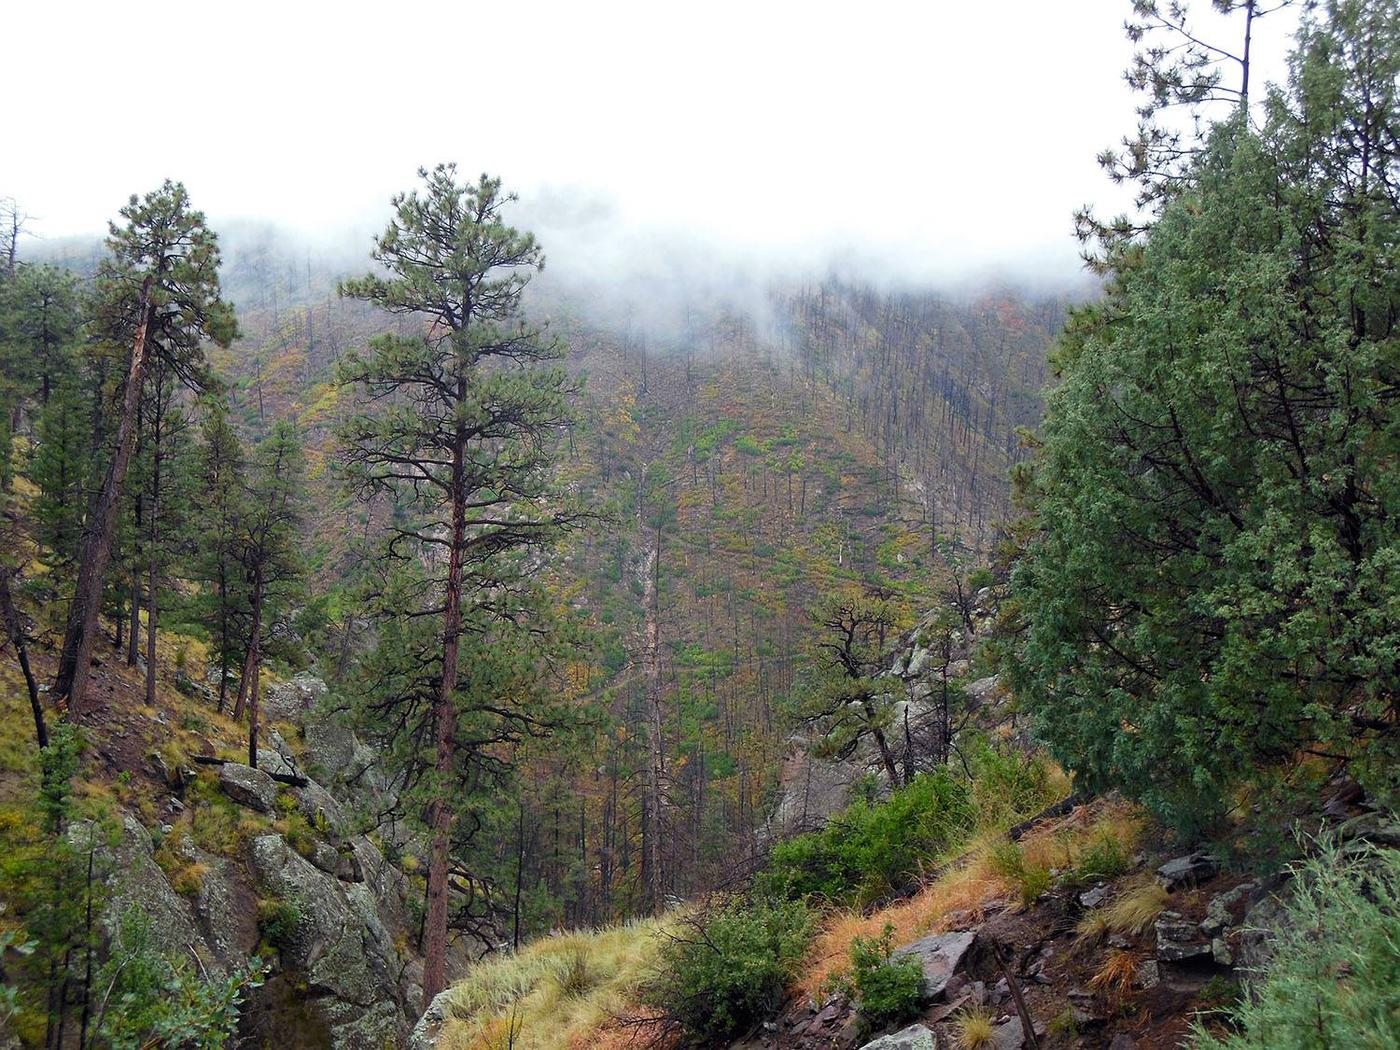 View of a tree covered mountainside with the peak obscured by fogView from Upper Crossing. Bandelier is home to over 70 miles of trails, much of which is accessible from the trailhead located at Ponderosa Group Campground